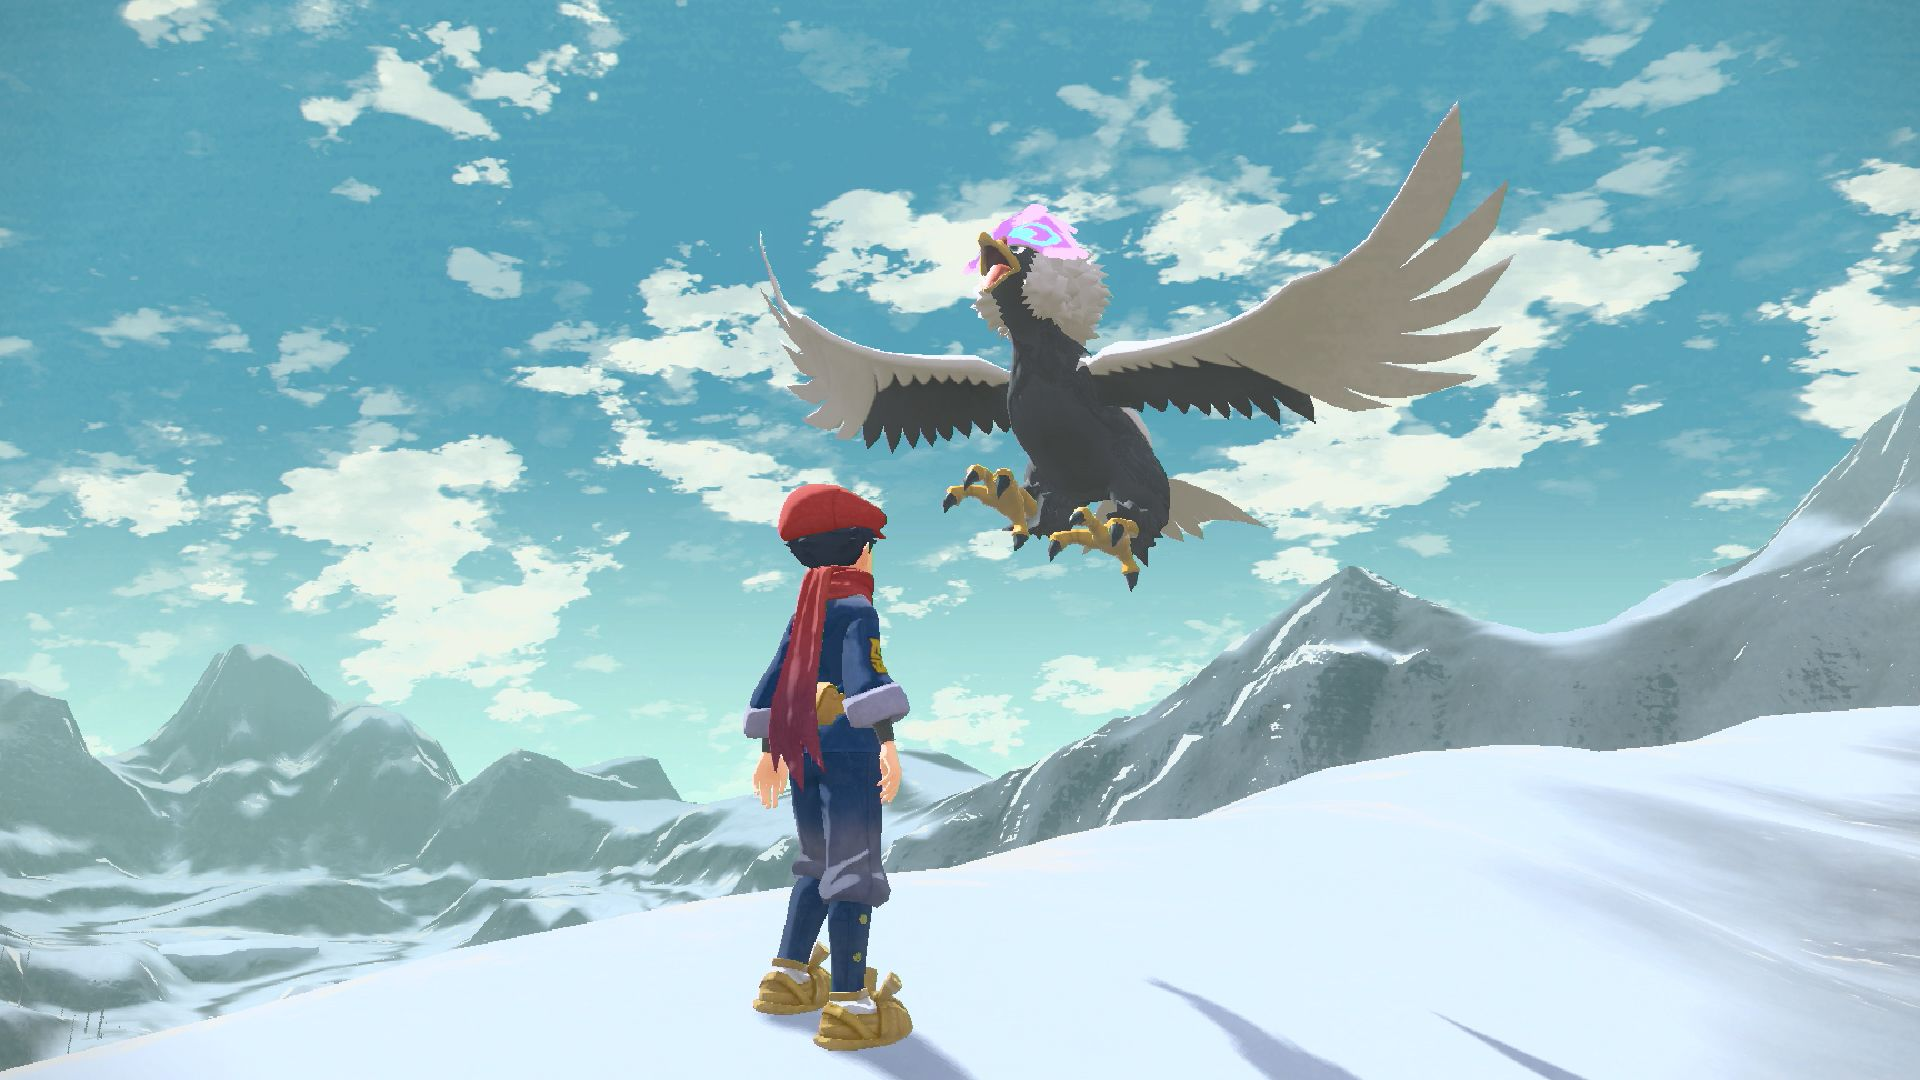 Pokémon Legends: Arceus Screenshot of the player character encountering a majestic Hisuian Braviary in a snowy mountain range.